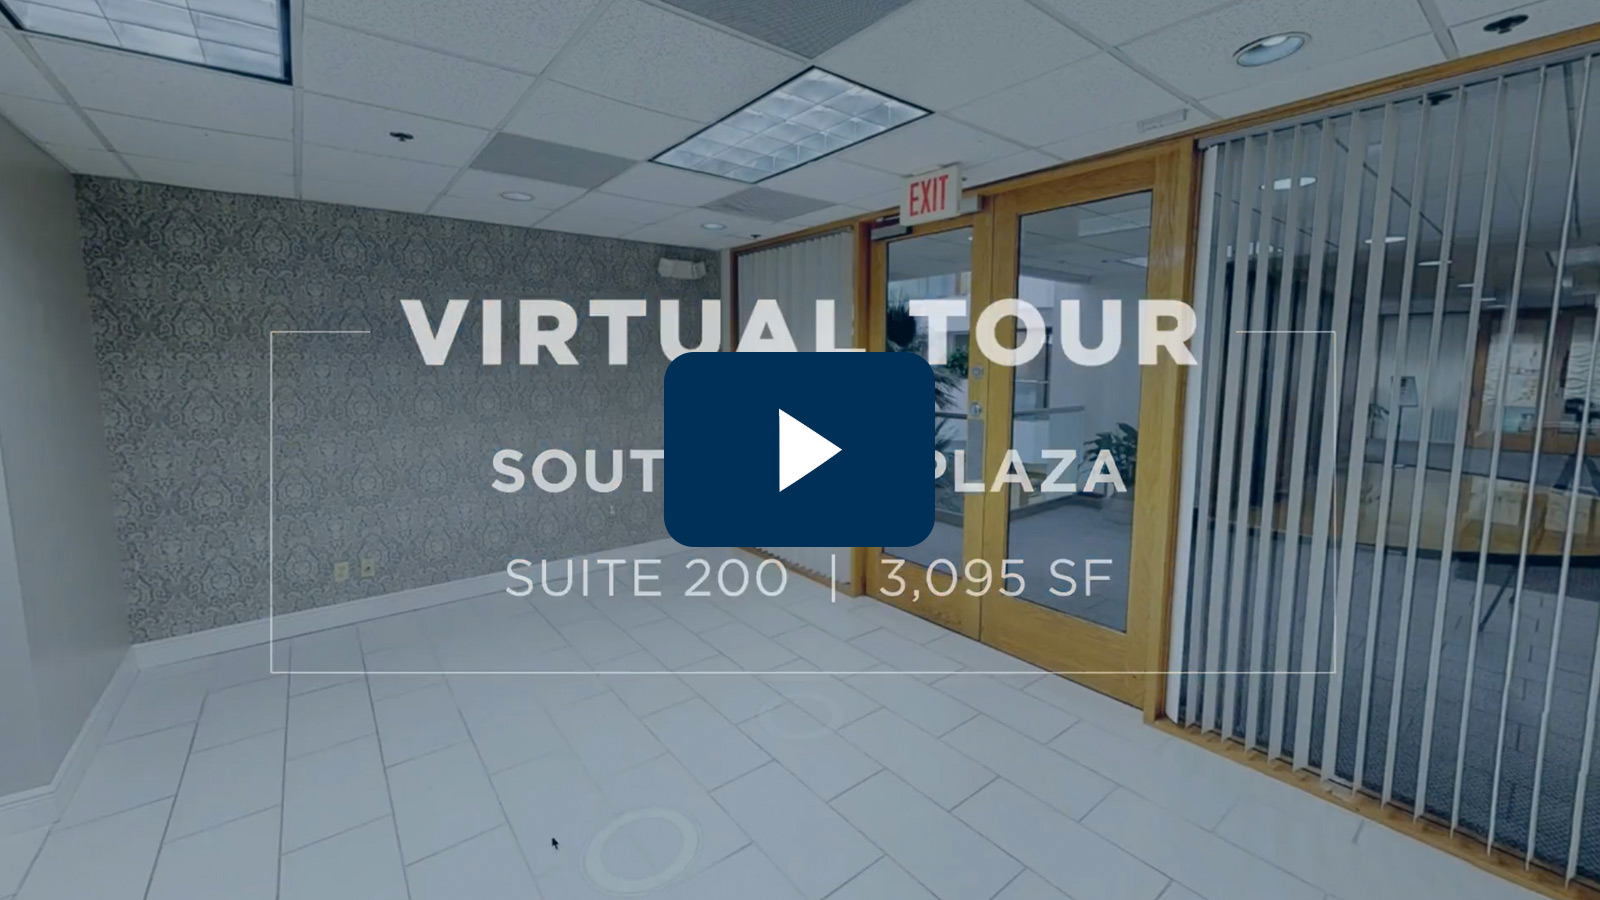 SOUTH CITY PLAZA SUITE 200